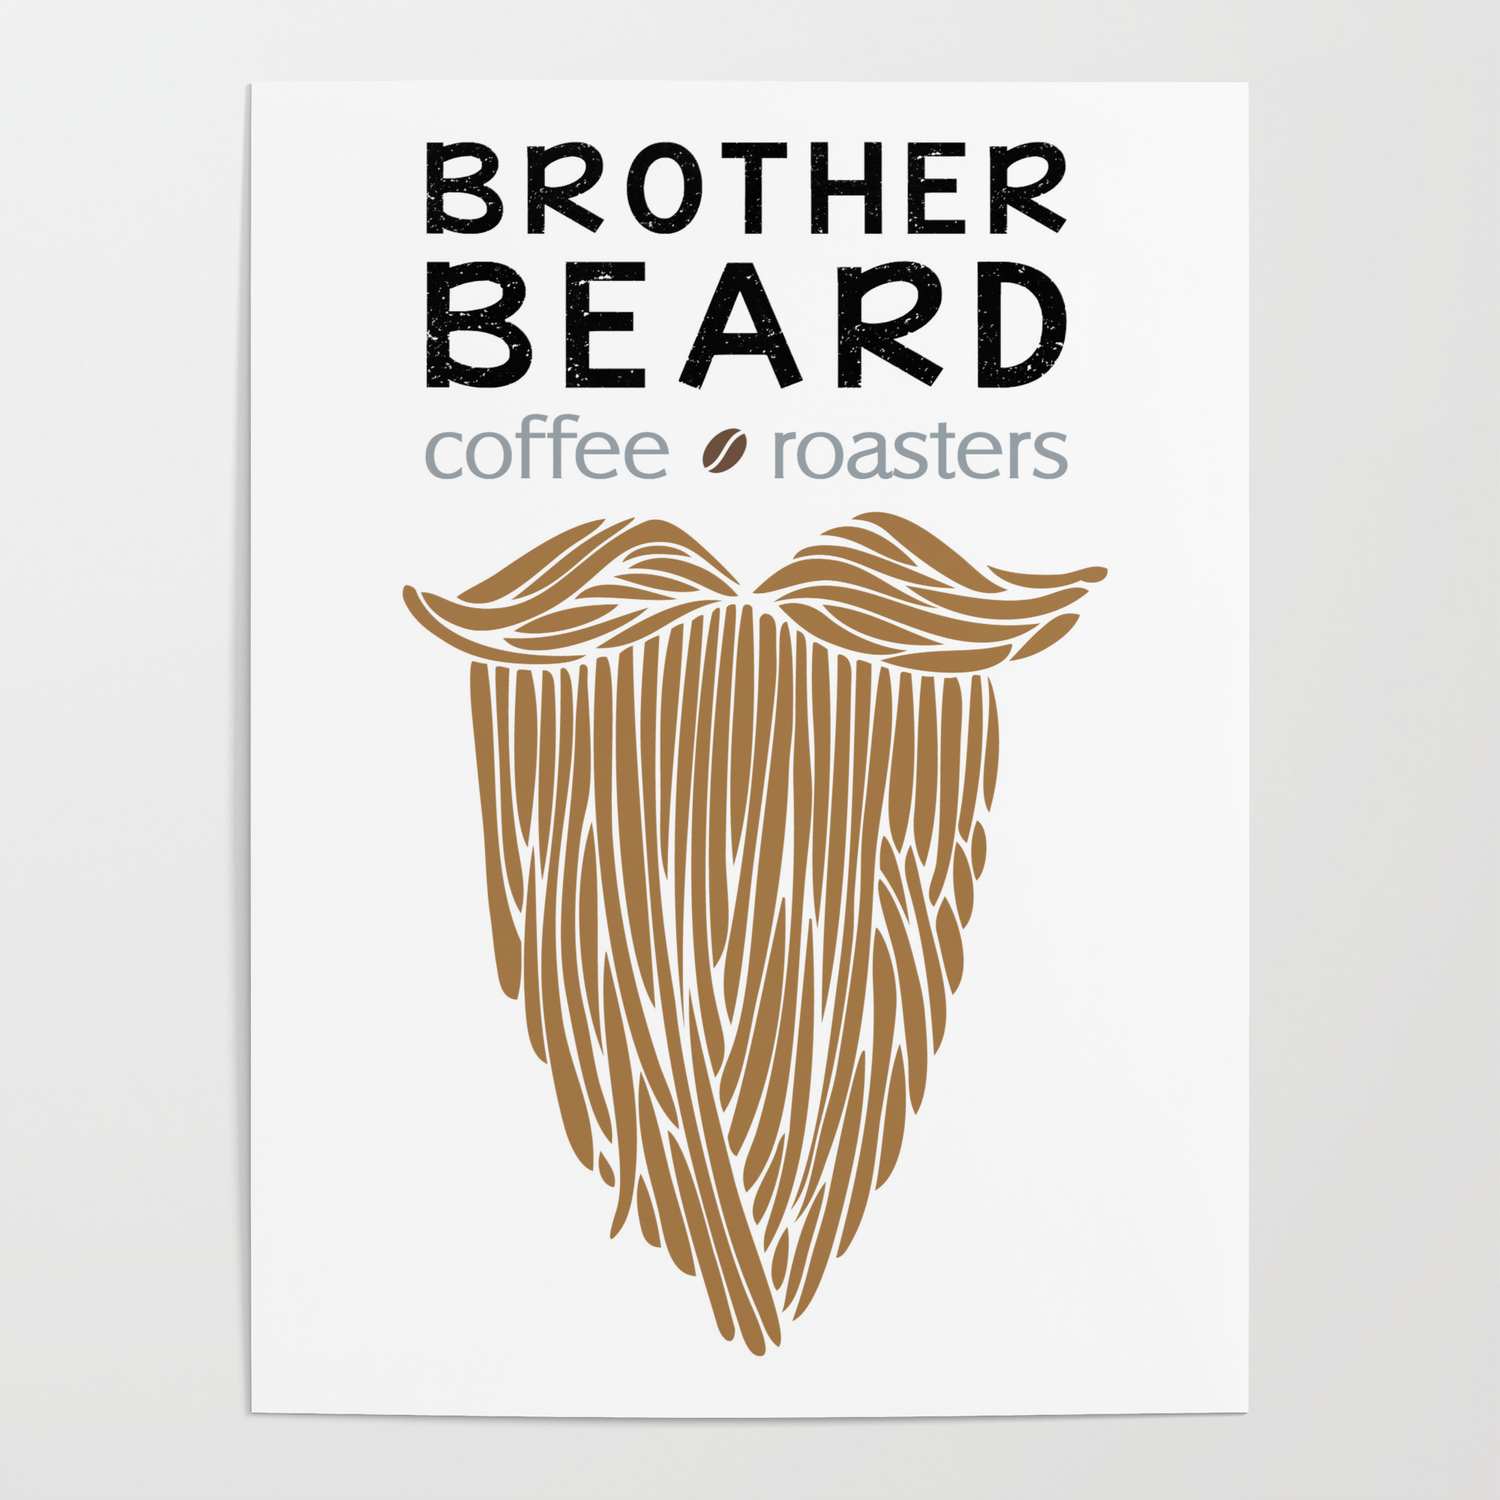 brother beard logo poster by johara society6 brother beard logo poster by johara